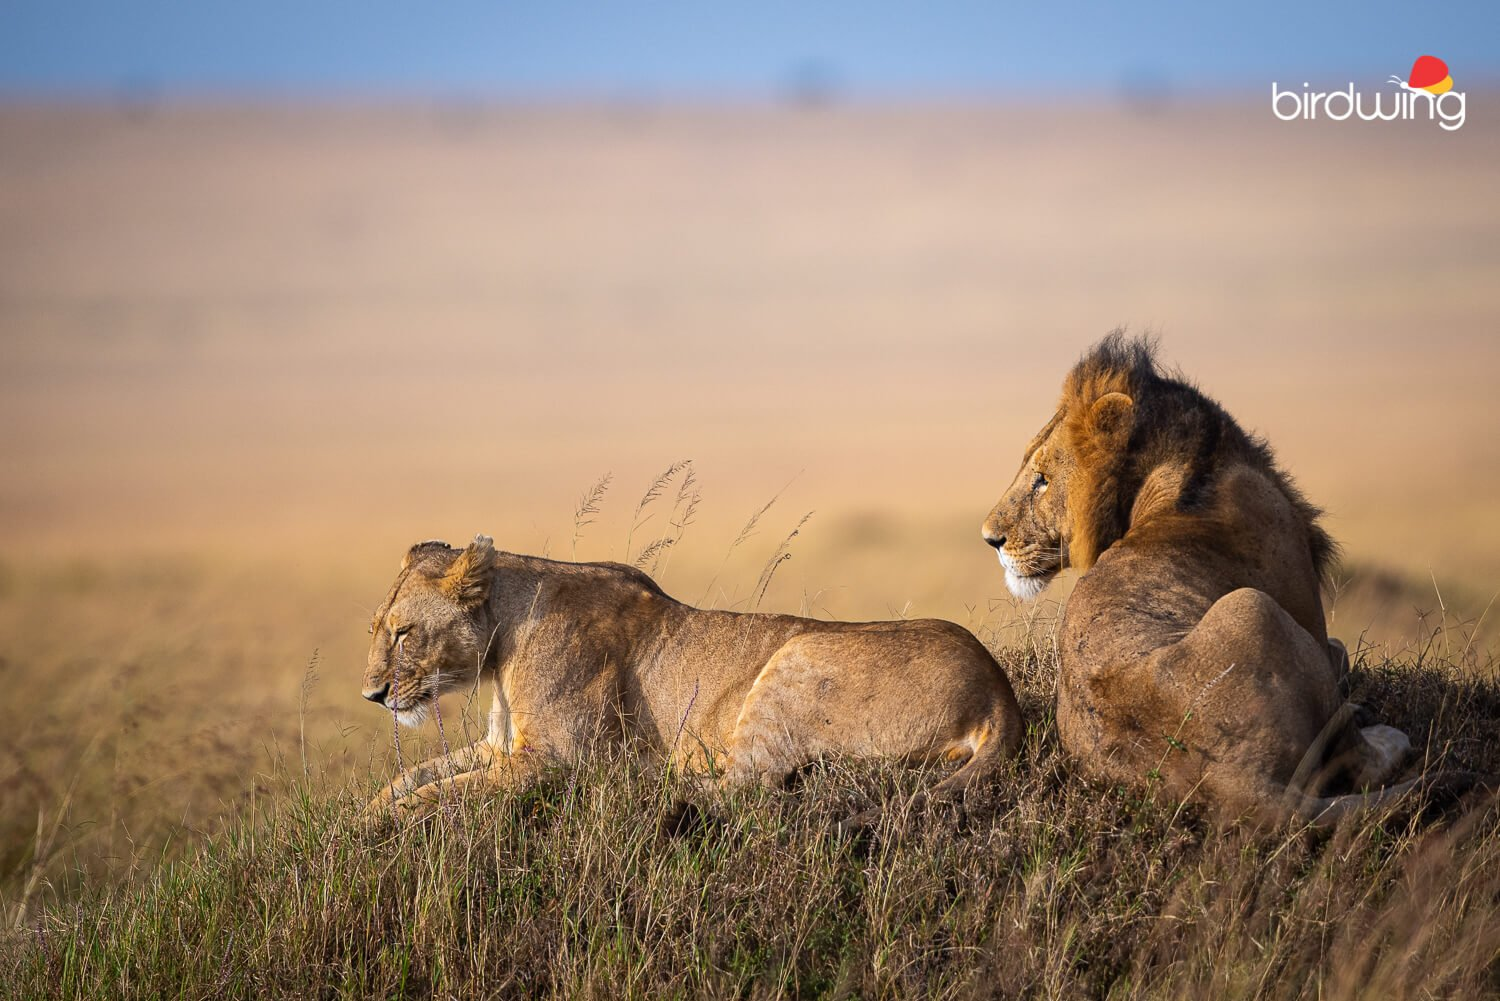 Mating Lions on a mound in Mara grasslands